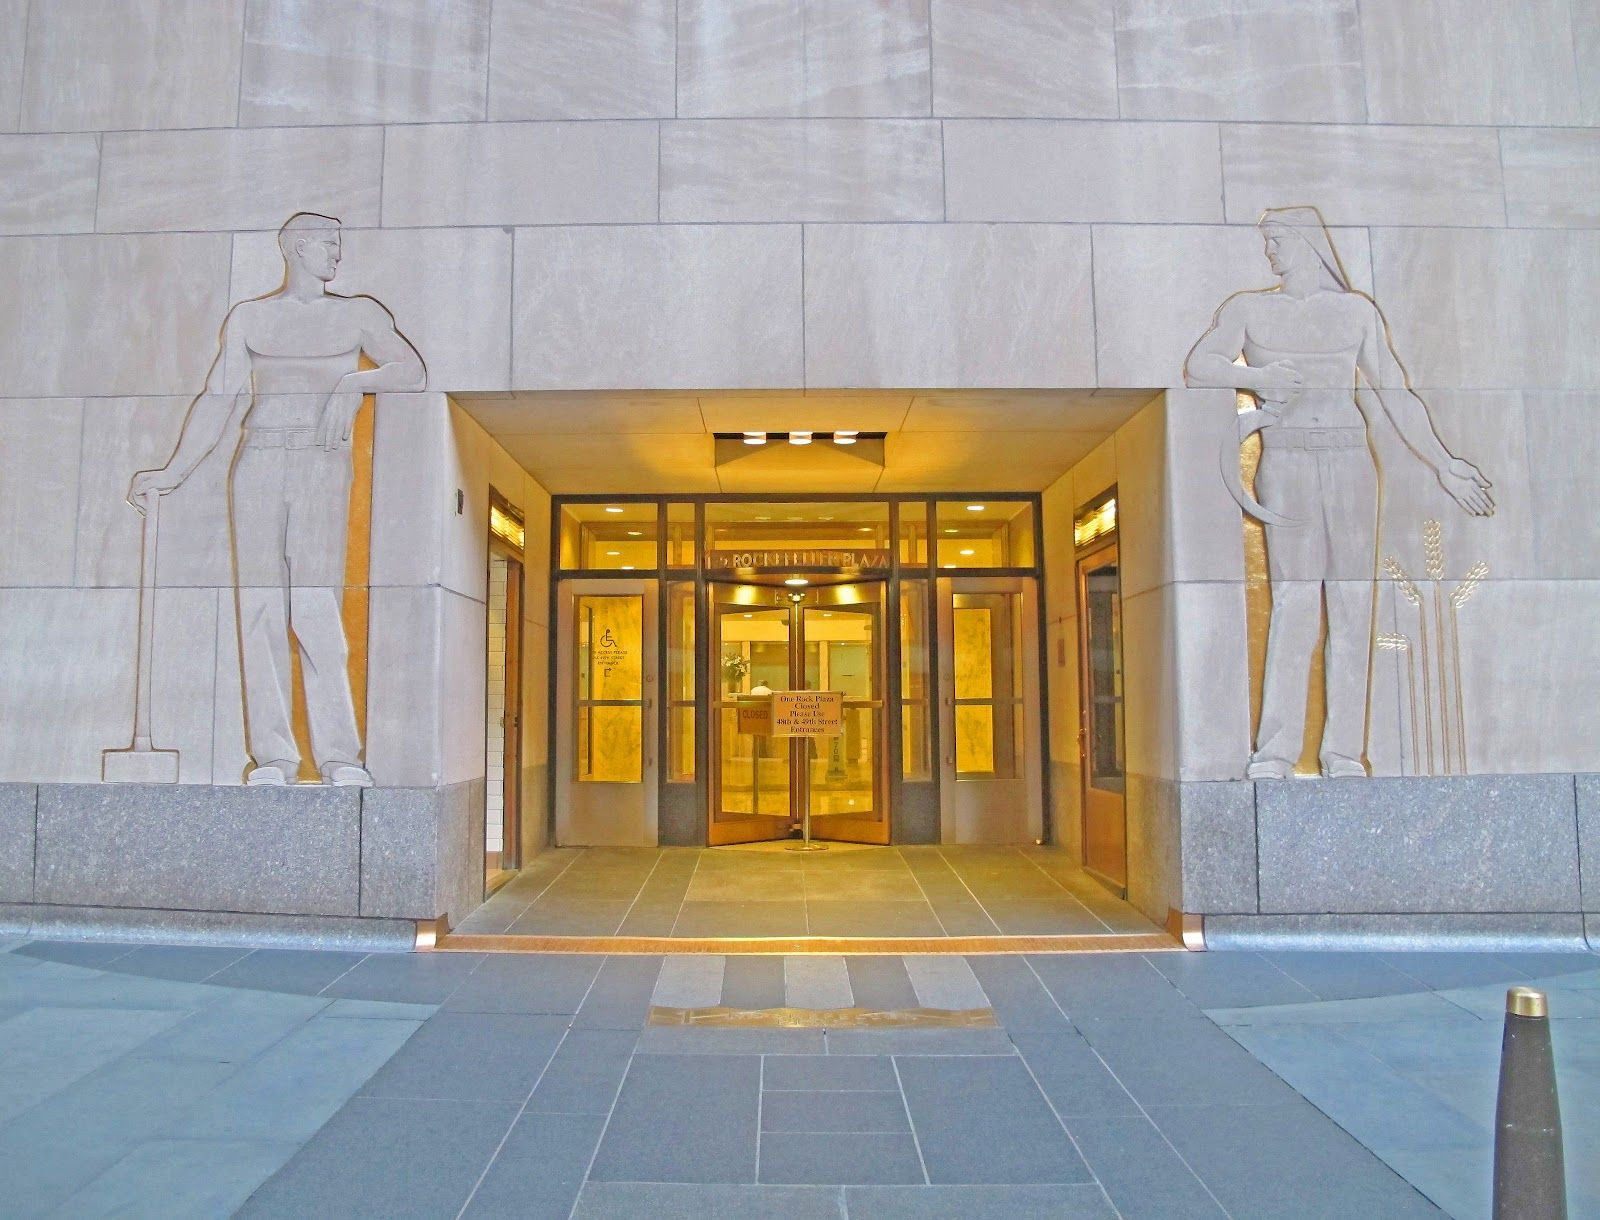 1 Rockefeller Plaza Carl Paul Jennewein S Heroic Sized Limestone Intaglio Carvings Industry And Agriculture Have Fra New York Street Street Level Limestone